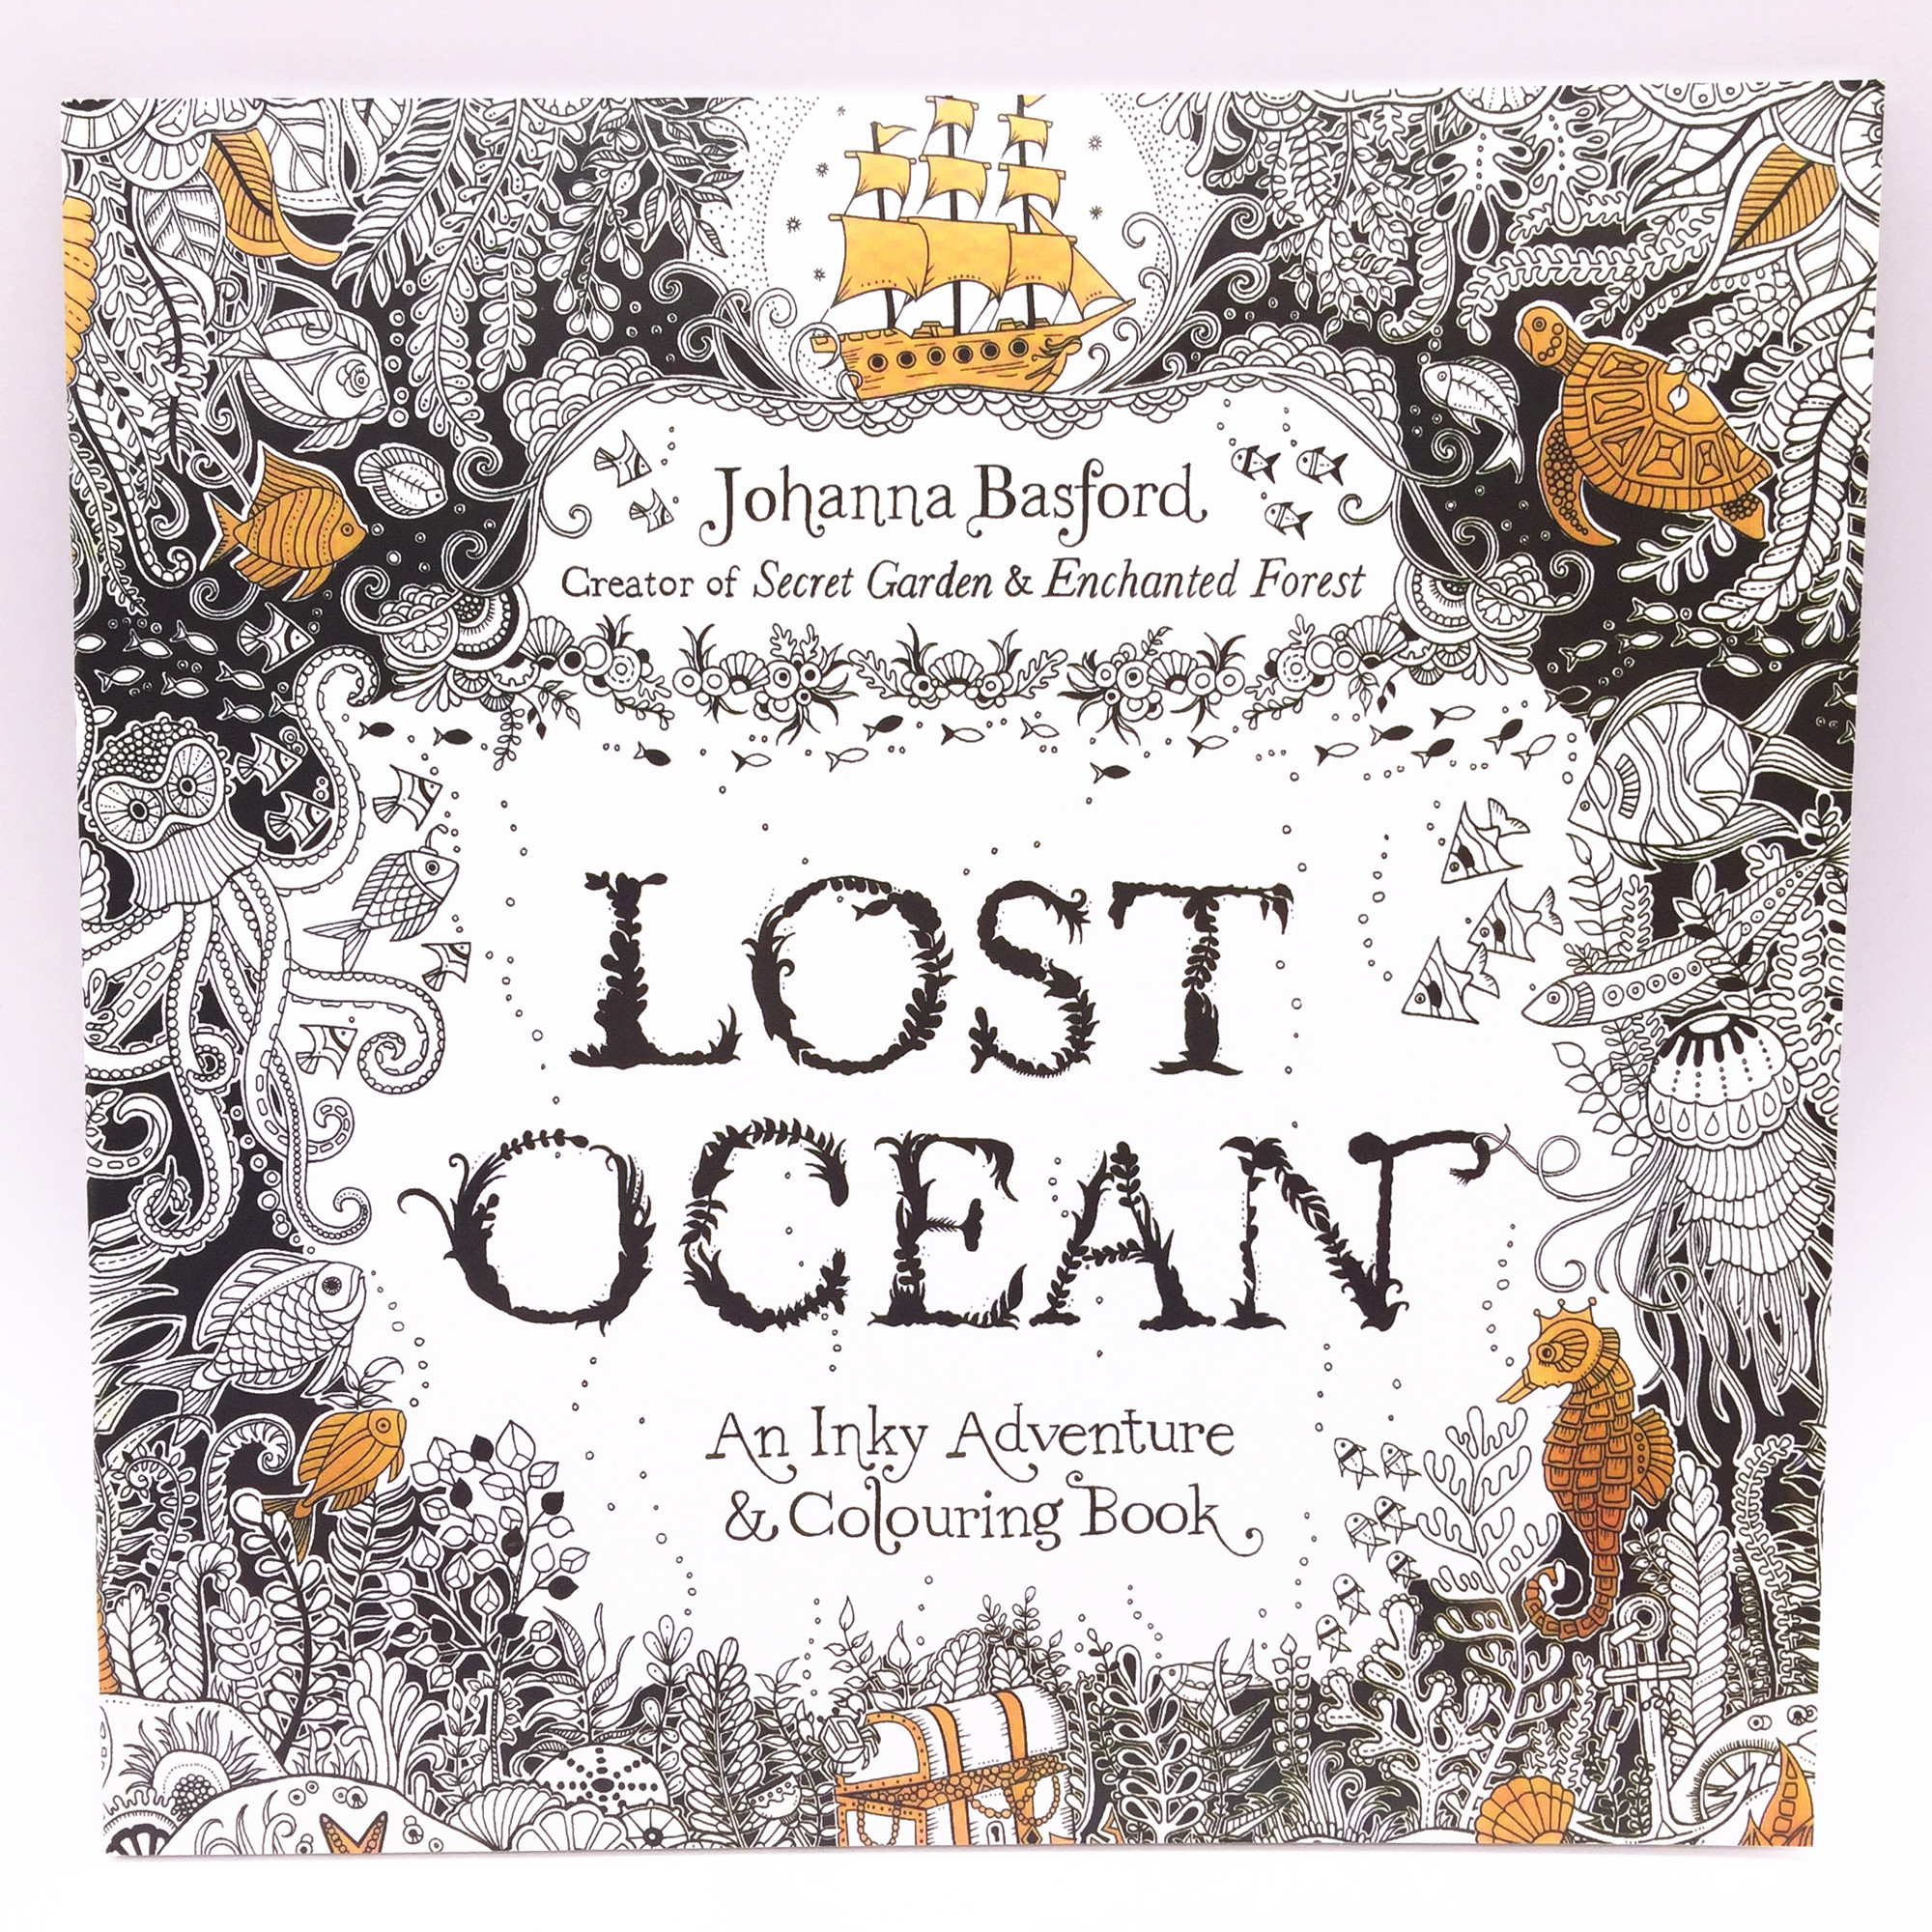 The enchanted forest colouring book nz - 88 Pages English Lost Ocean Edition Colouring Book For Children Adult Relieve Stress Kill Time Graffiti